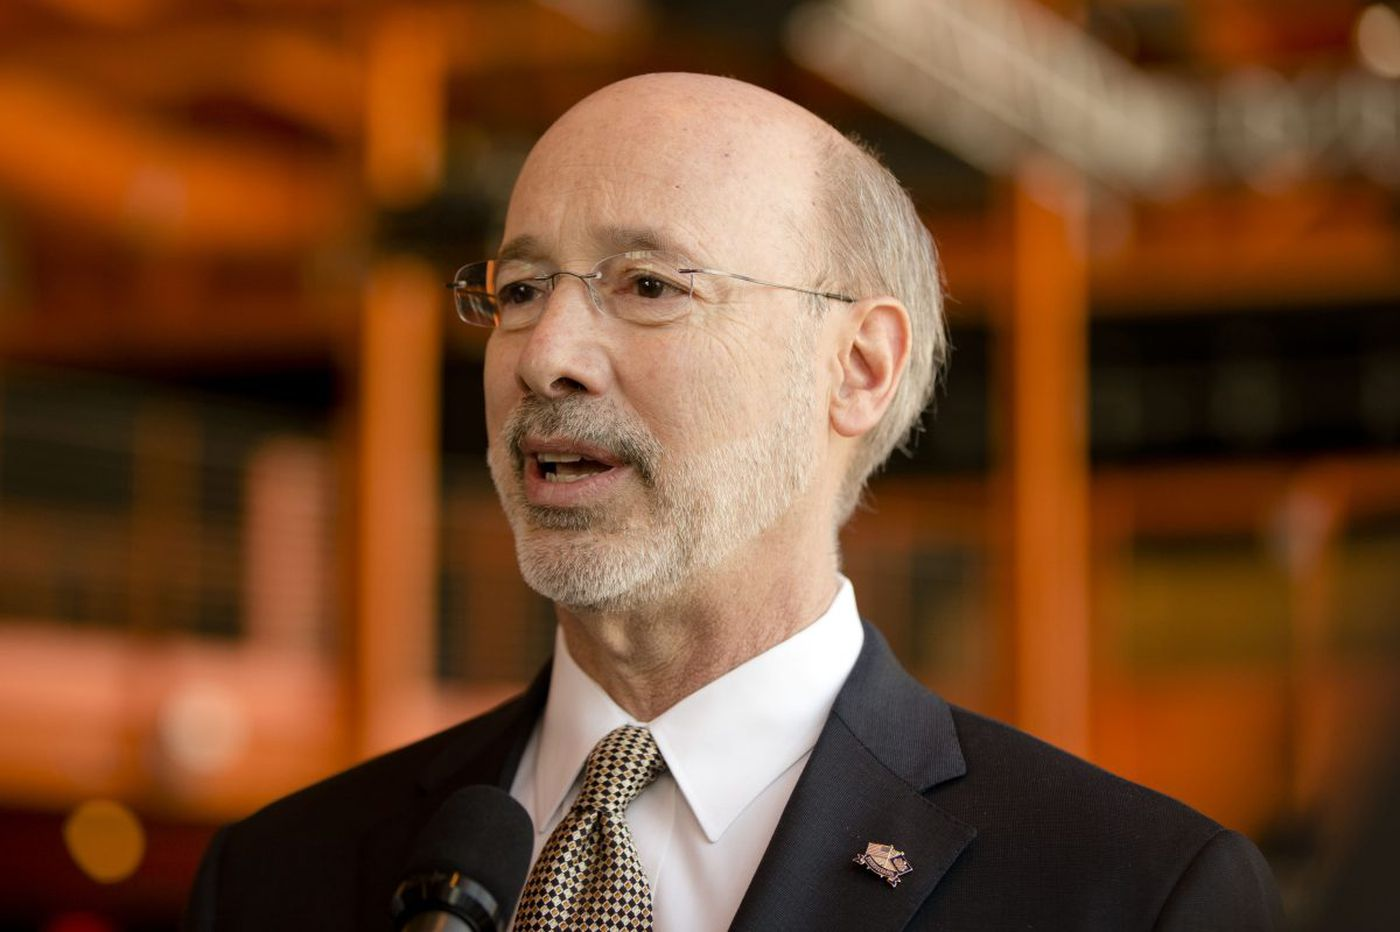 Pa. Gov. Wolf calls on legislators to tighten pension rules